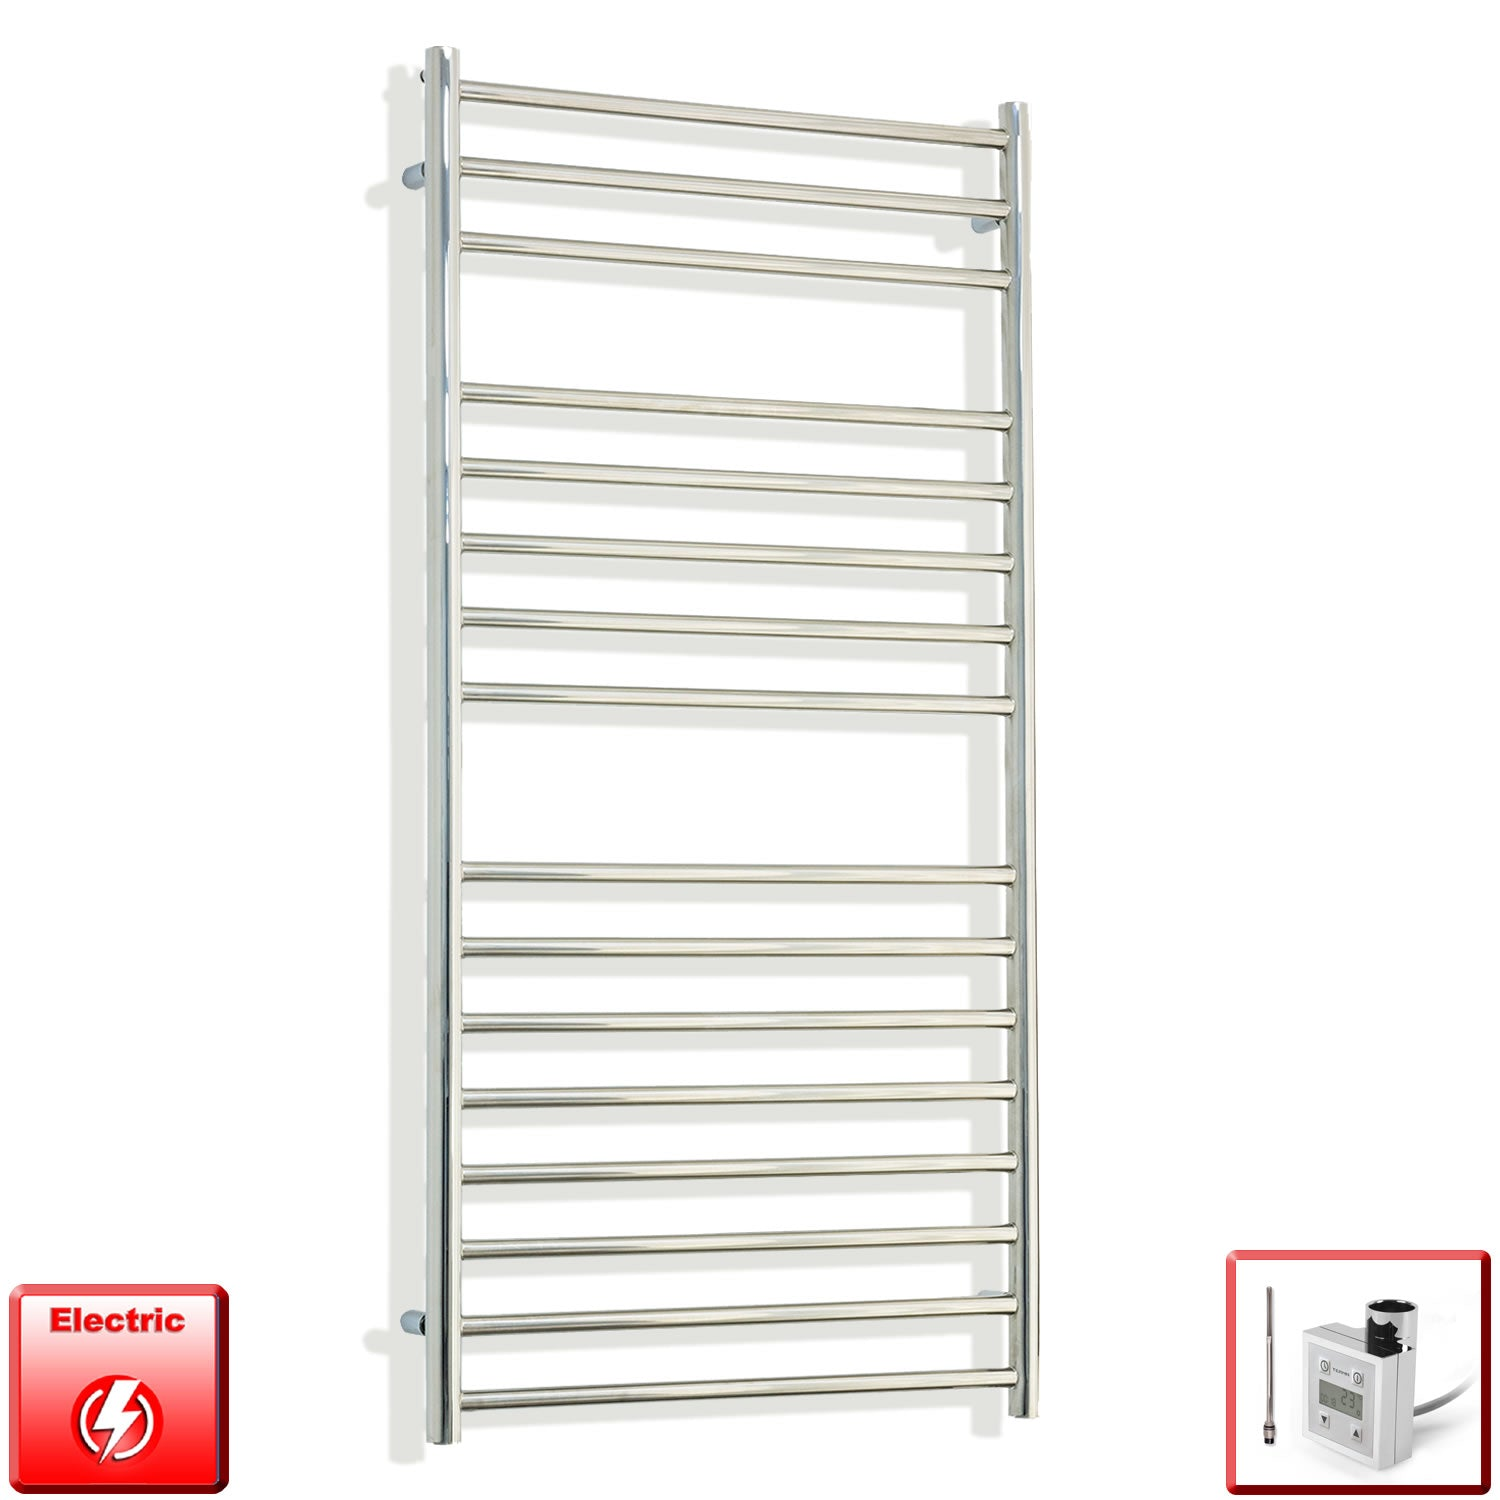 1200 mm High 600 mm Wide Pre-Filled Electric Stainless Steel Heated Towel Rail Radiator ktx3 thermostatic heating element